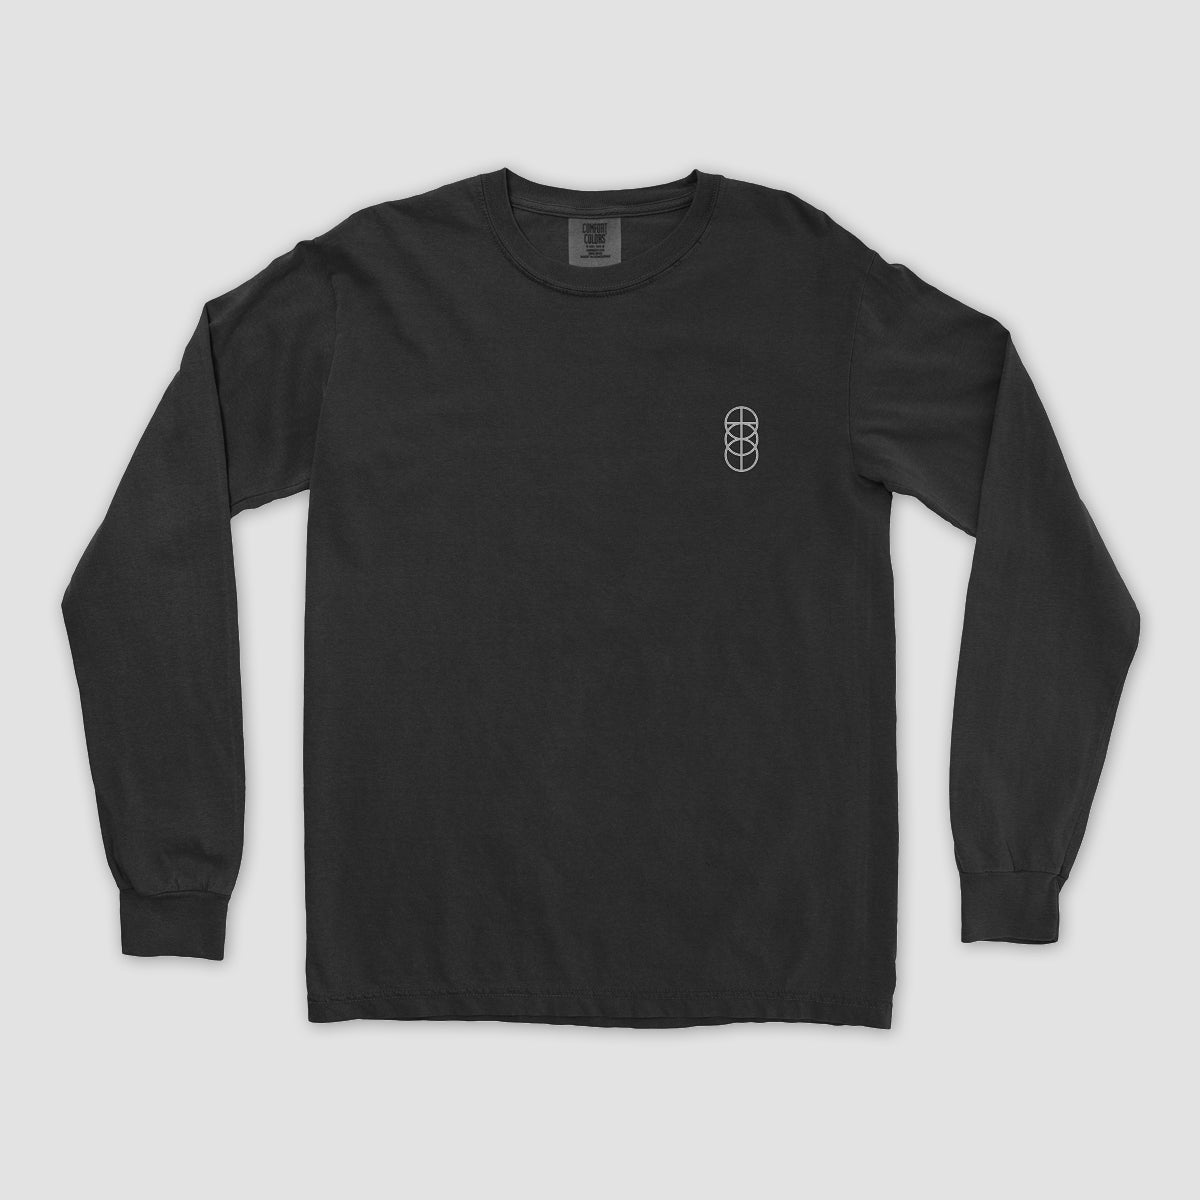 Revival Long Sleeve Tee